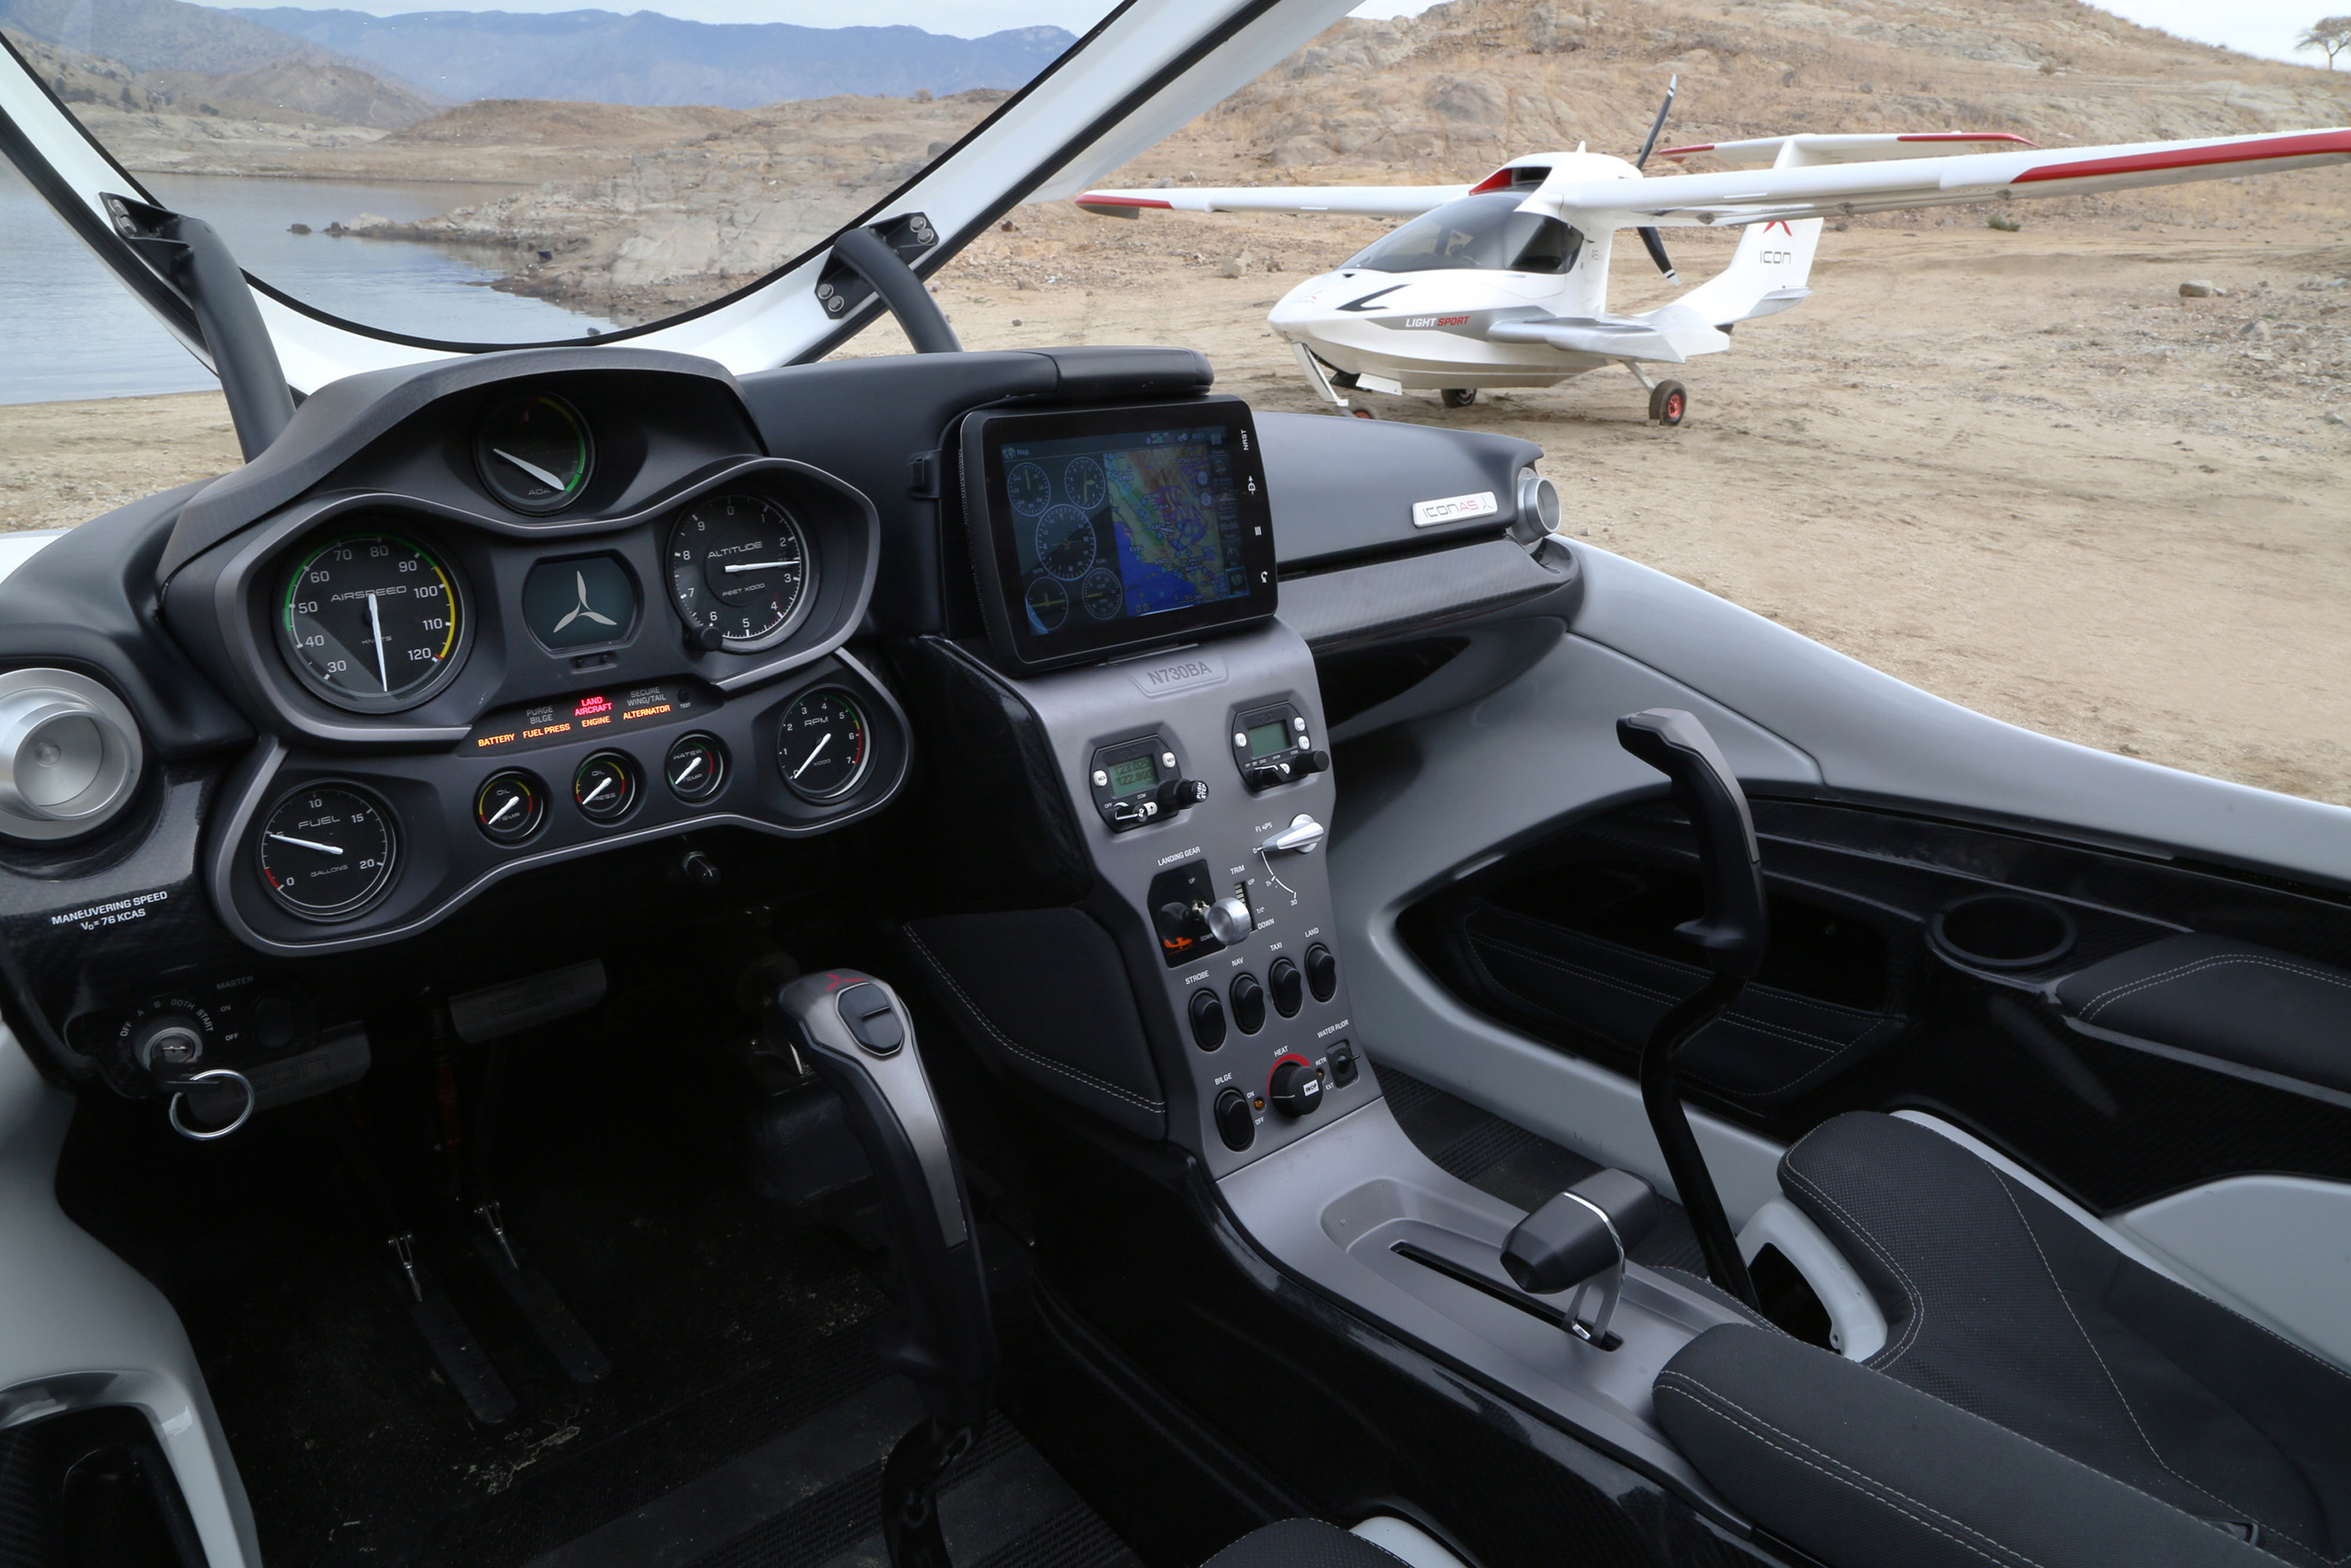 Icon A5 light-sport airplane